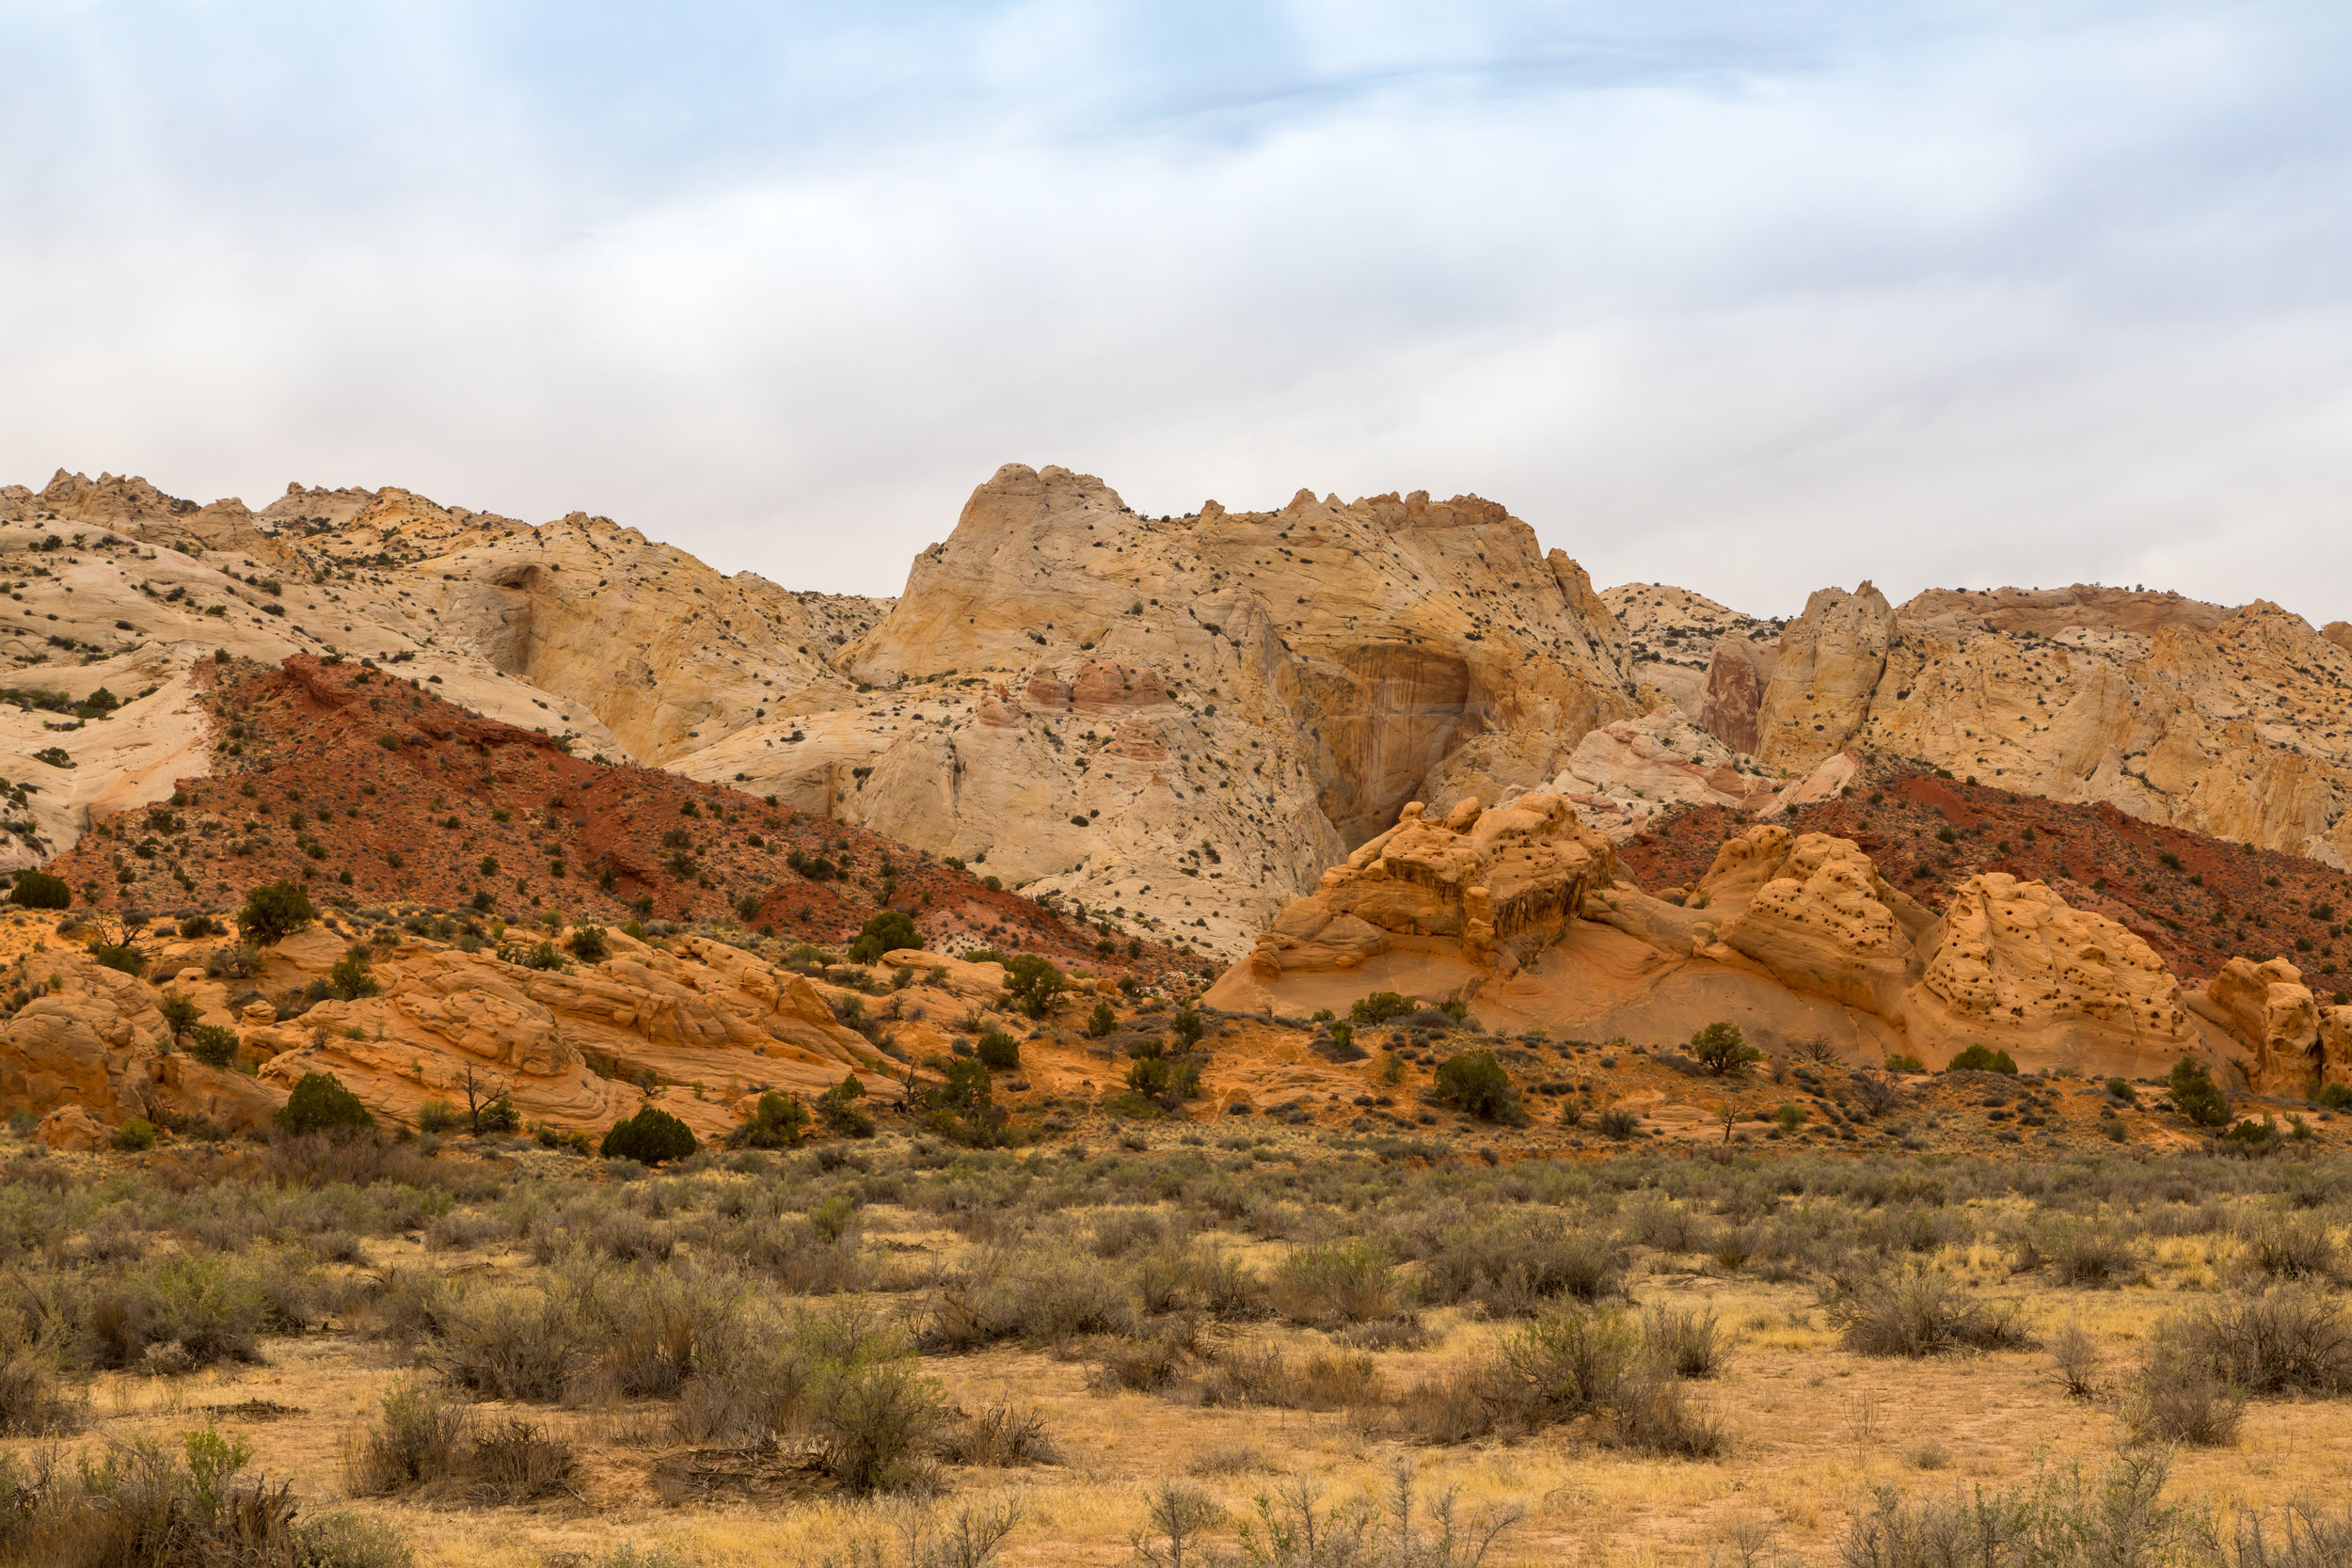 Capitol Reef National Park, Image # 4915